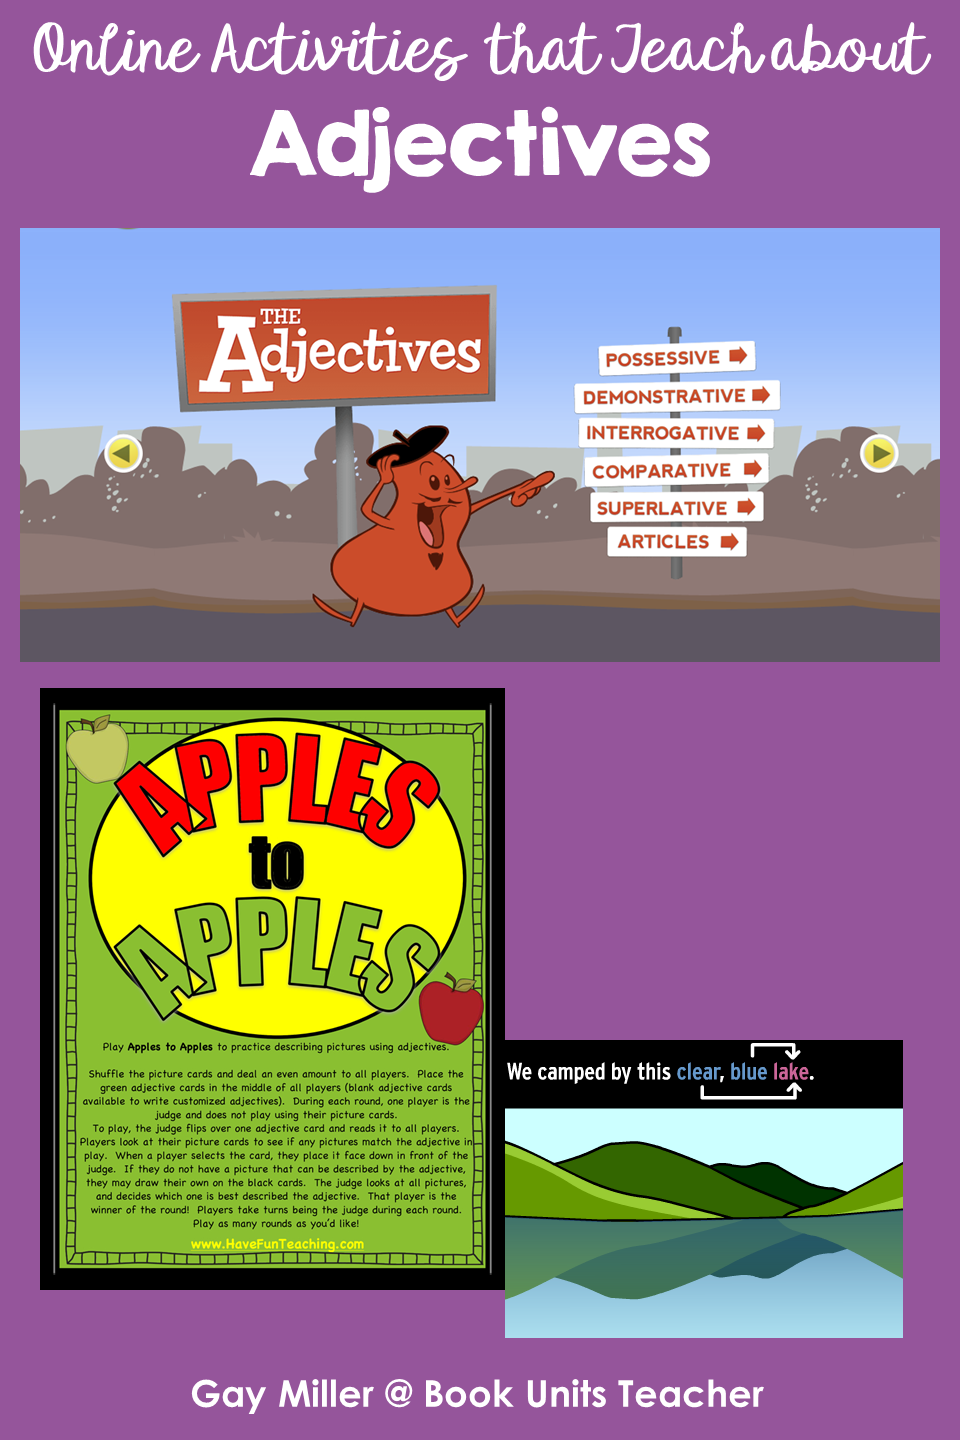 Adjectives - Activites on the Web